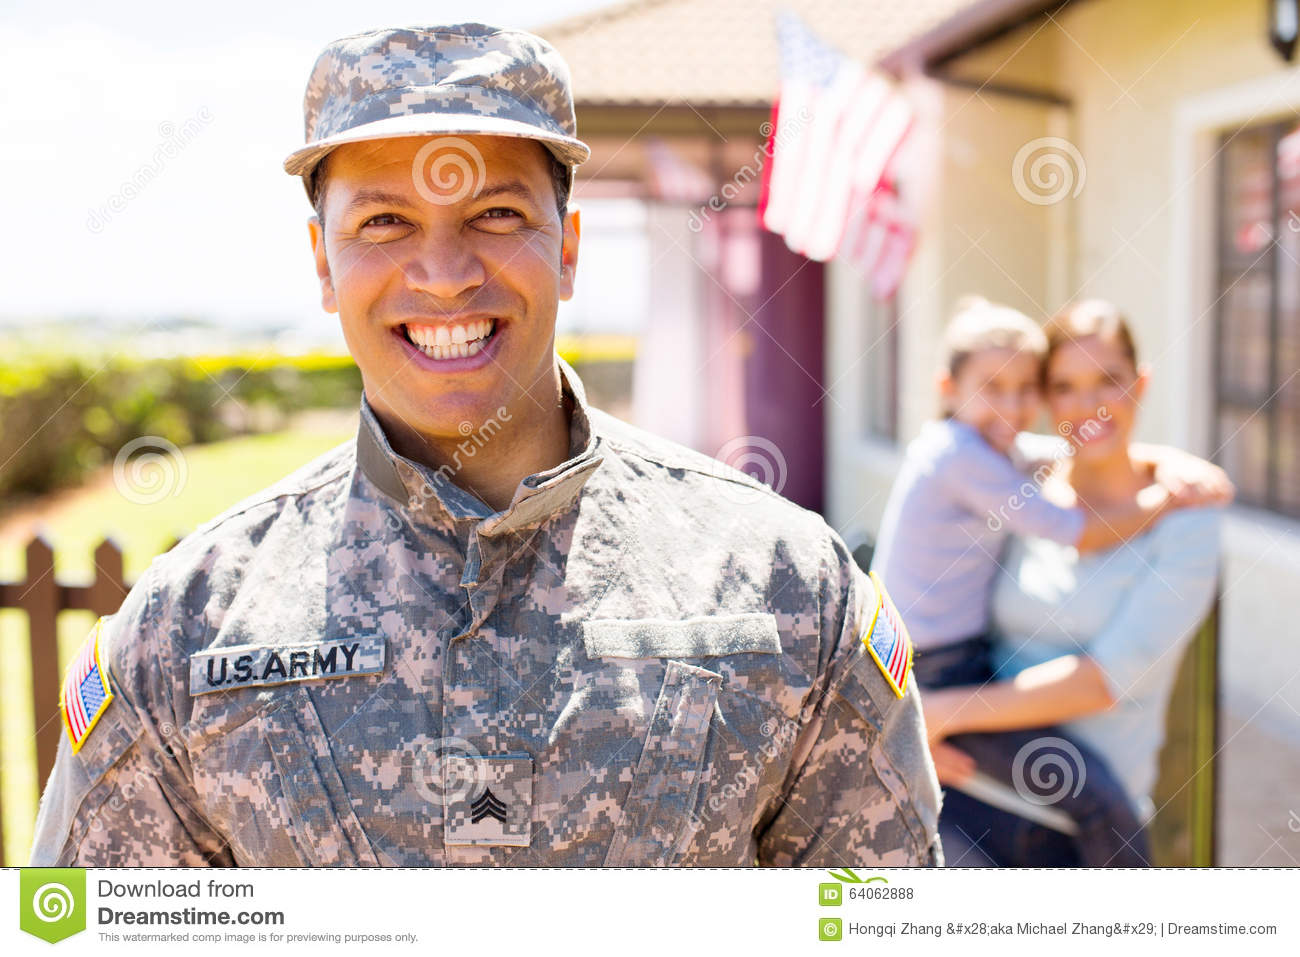 American military soldier standing